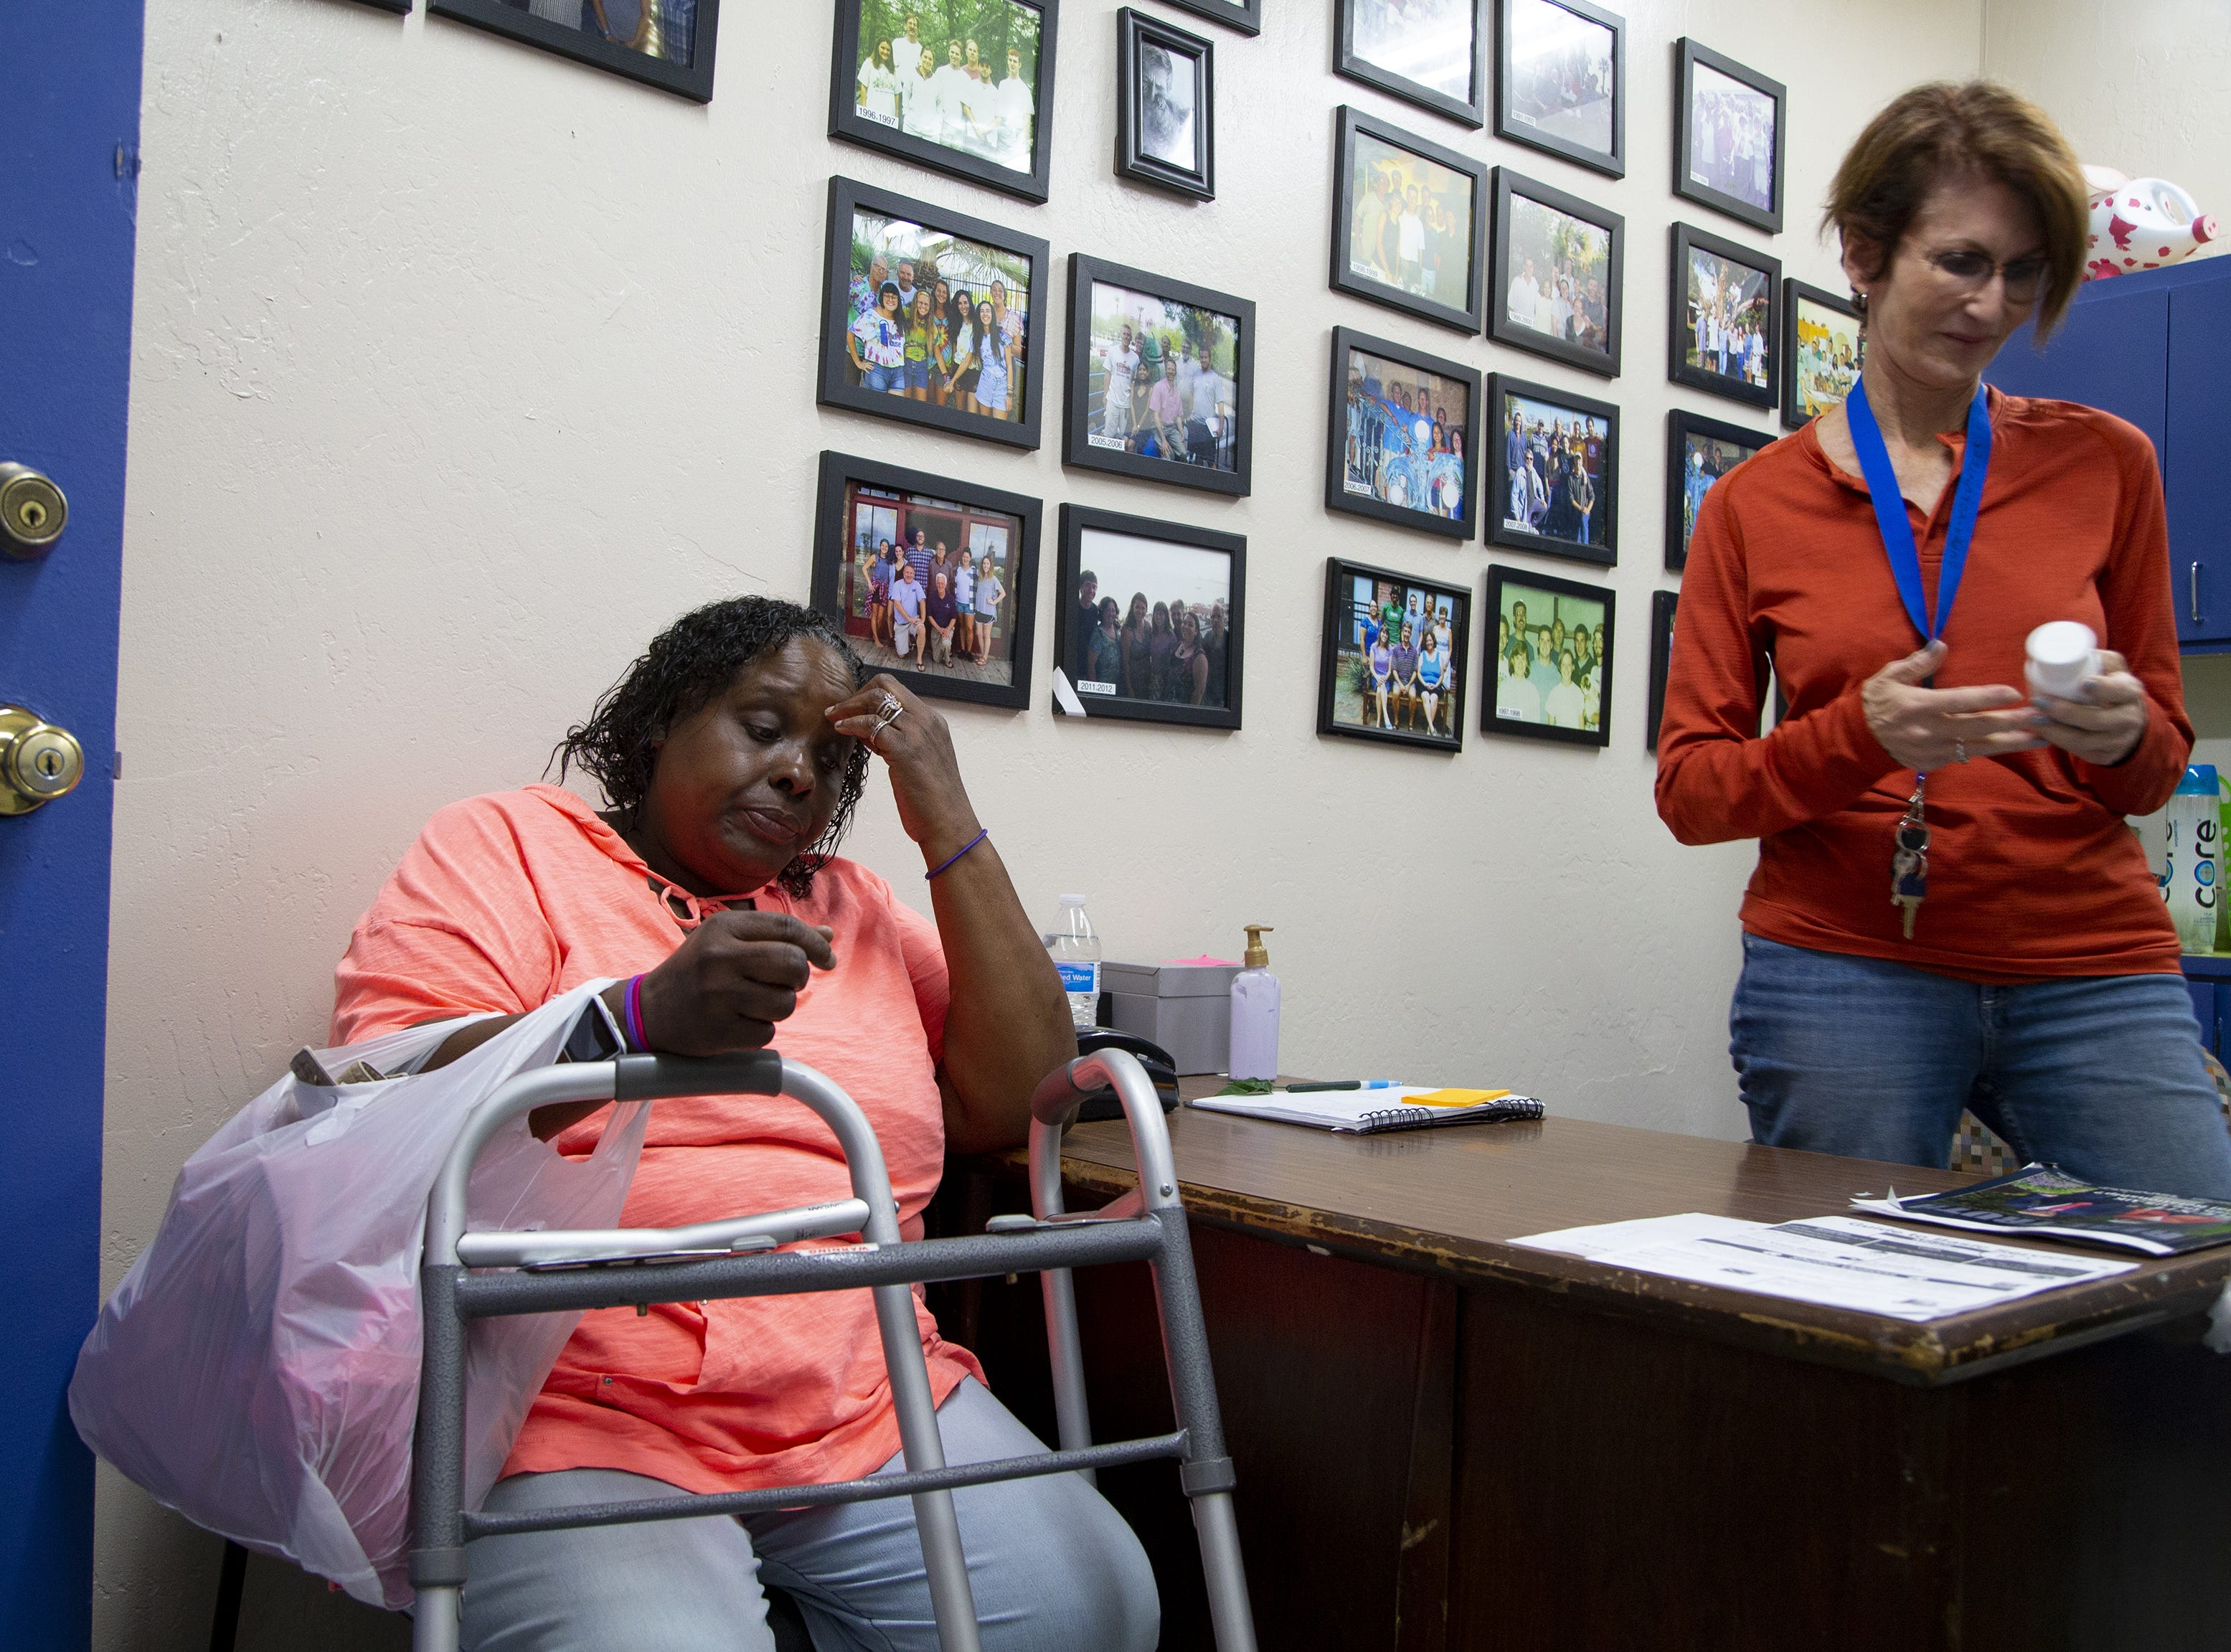 Romona Stevenson, 55, got pneumonia and went to the county hospital, Maricopa Medical Center, unable to breathe. After a week taking antibiotics, breathing treatments and hooked up to an oxygen tank, the hospital discharged her and paid for a cab to take her to the downtown Phoenix homeless shelter. There was no bed available, so she sat two nights at a bus stop outside McDonald's.  Stevenson gets assistance from volunteer Laura Ziff at Andre House of Hospitality homeless center in Phoenix.